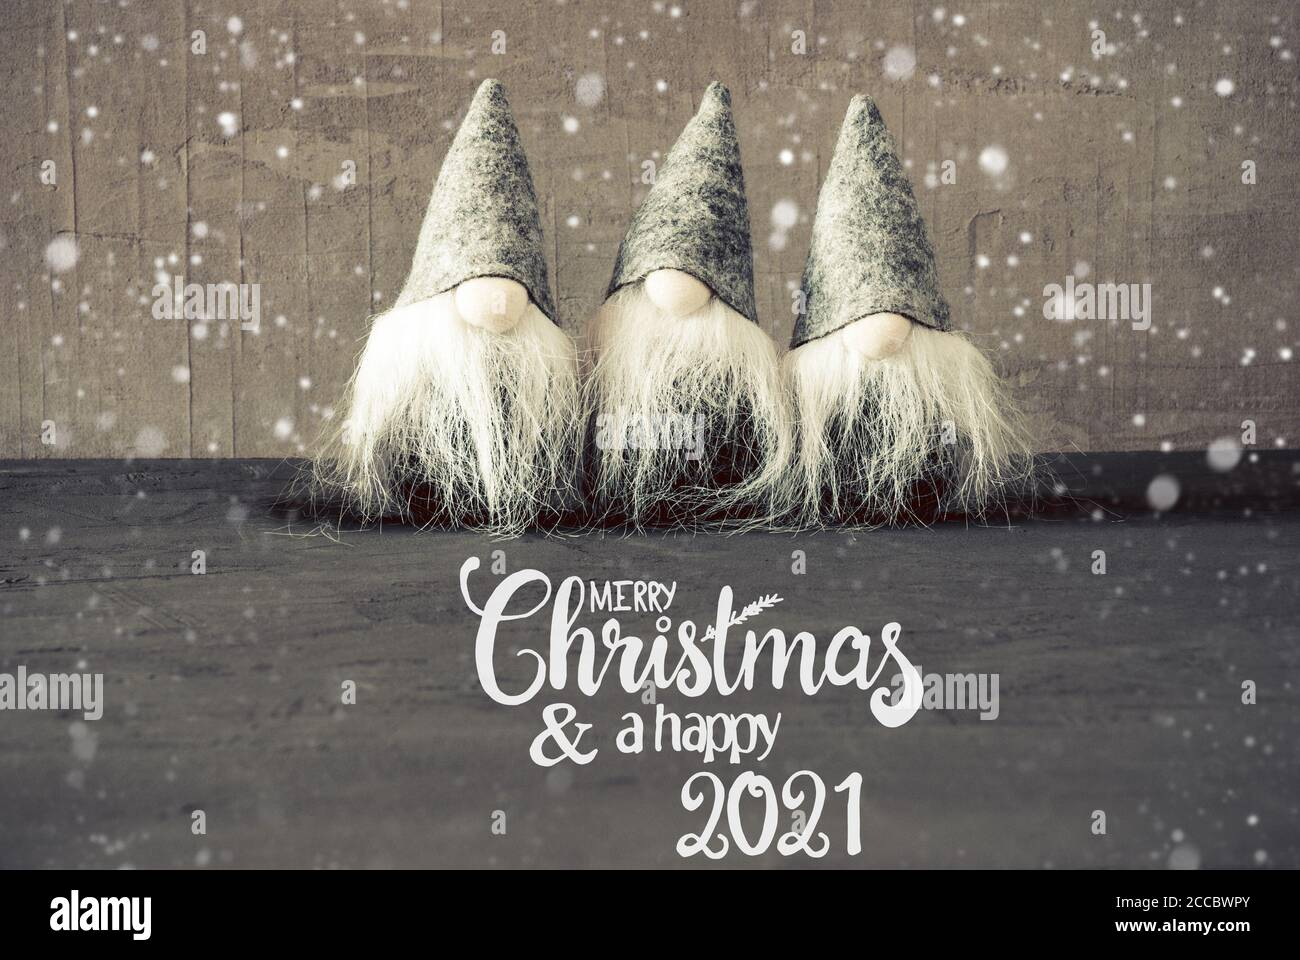 Merry Christmas 2021 Pictures Gray Santa Claus Cement Background Snowflakes Merry Christmas And A Happy 2021 Stock Photo Alamy